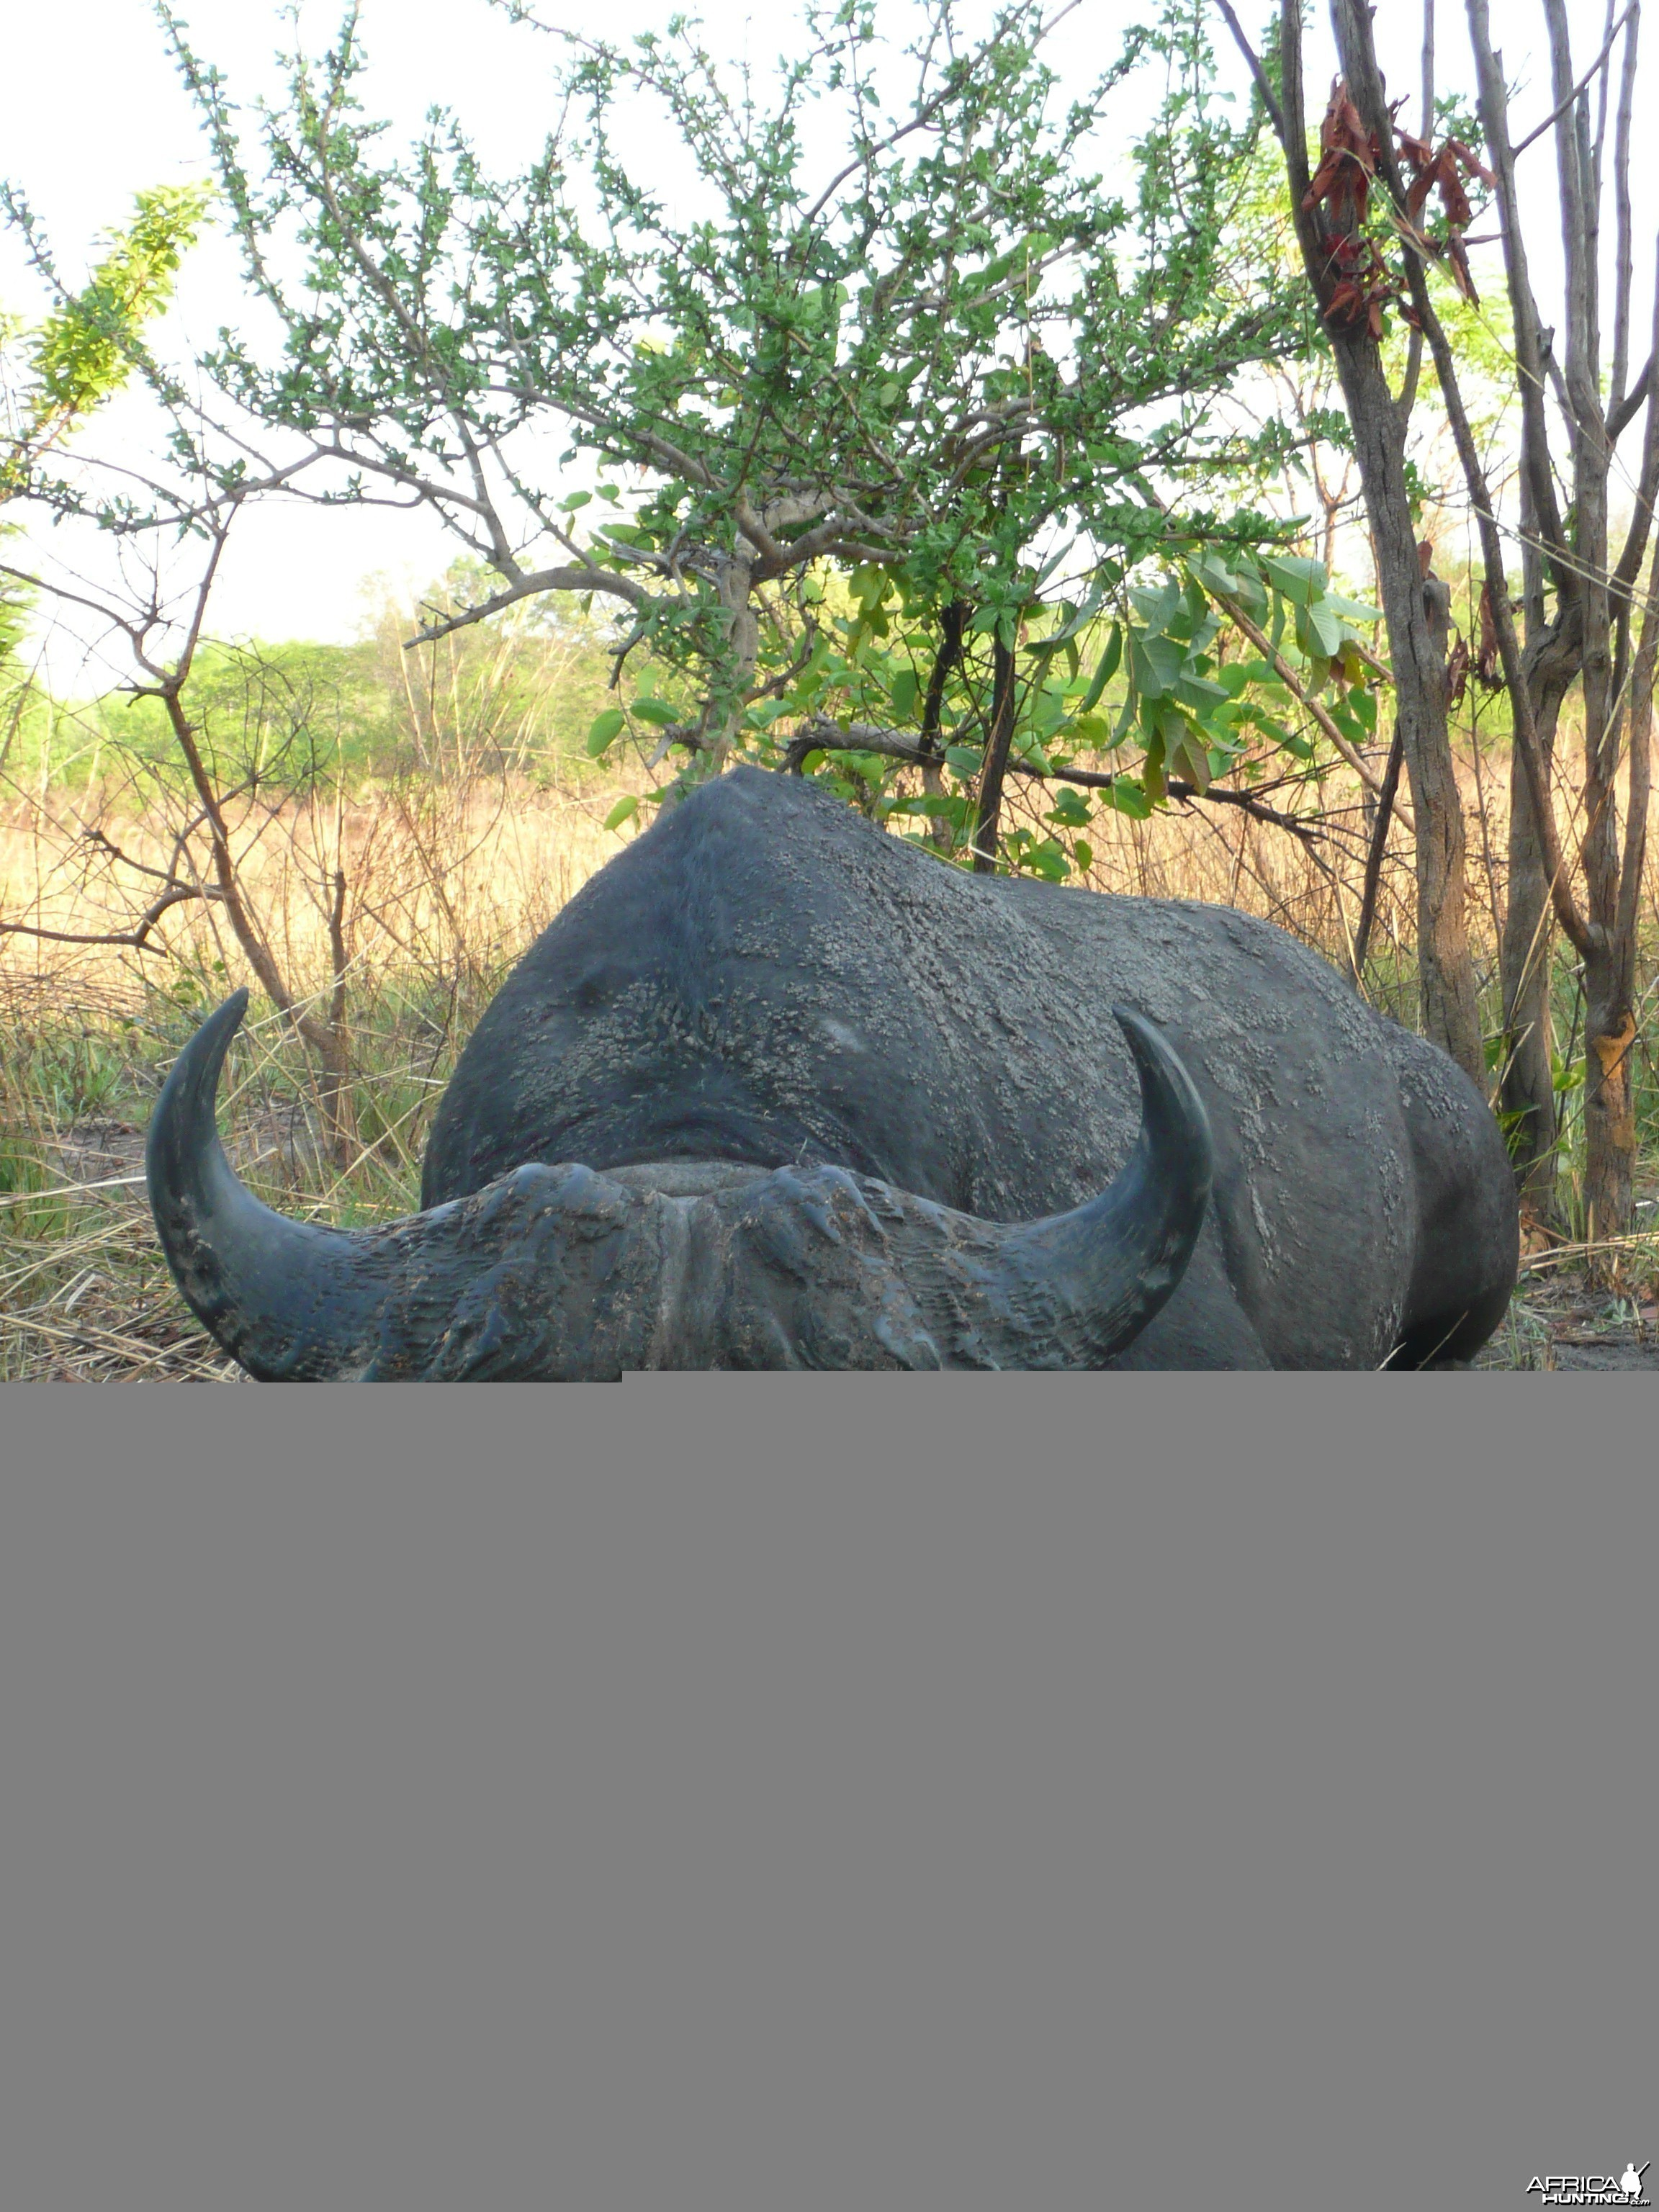 Black Buffalo bull hunted in CAR